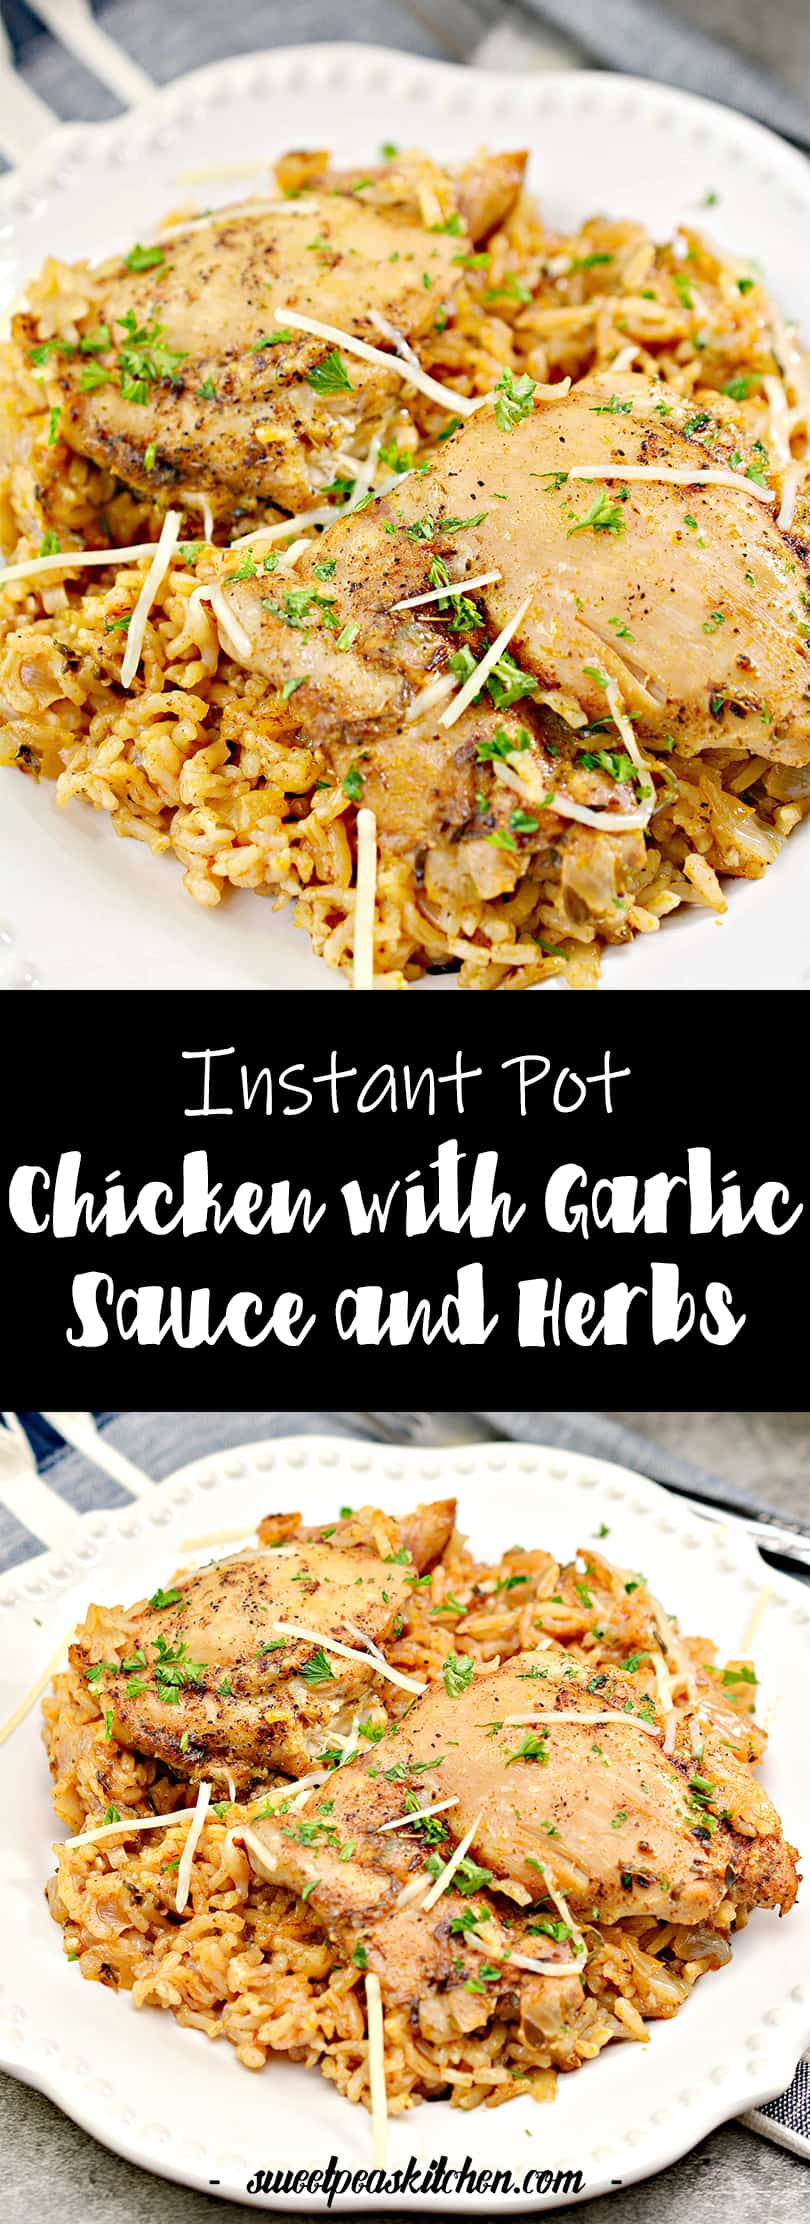 Instant Pot Chicken with Garlic Sauce and Herbs